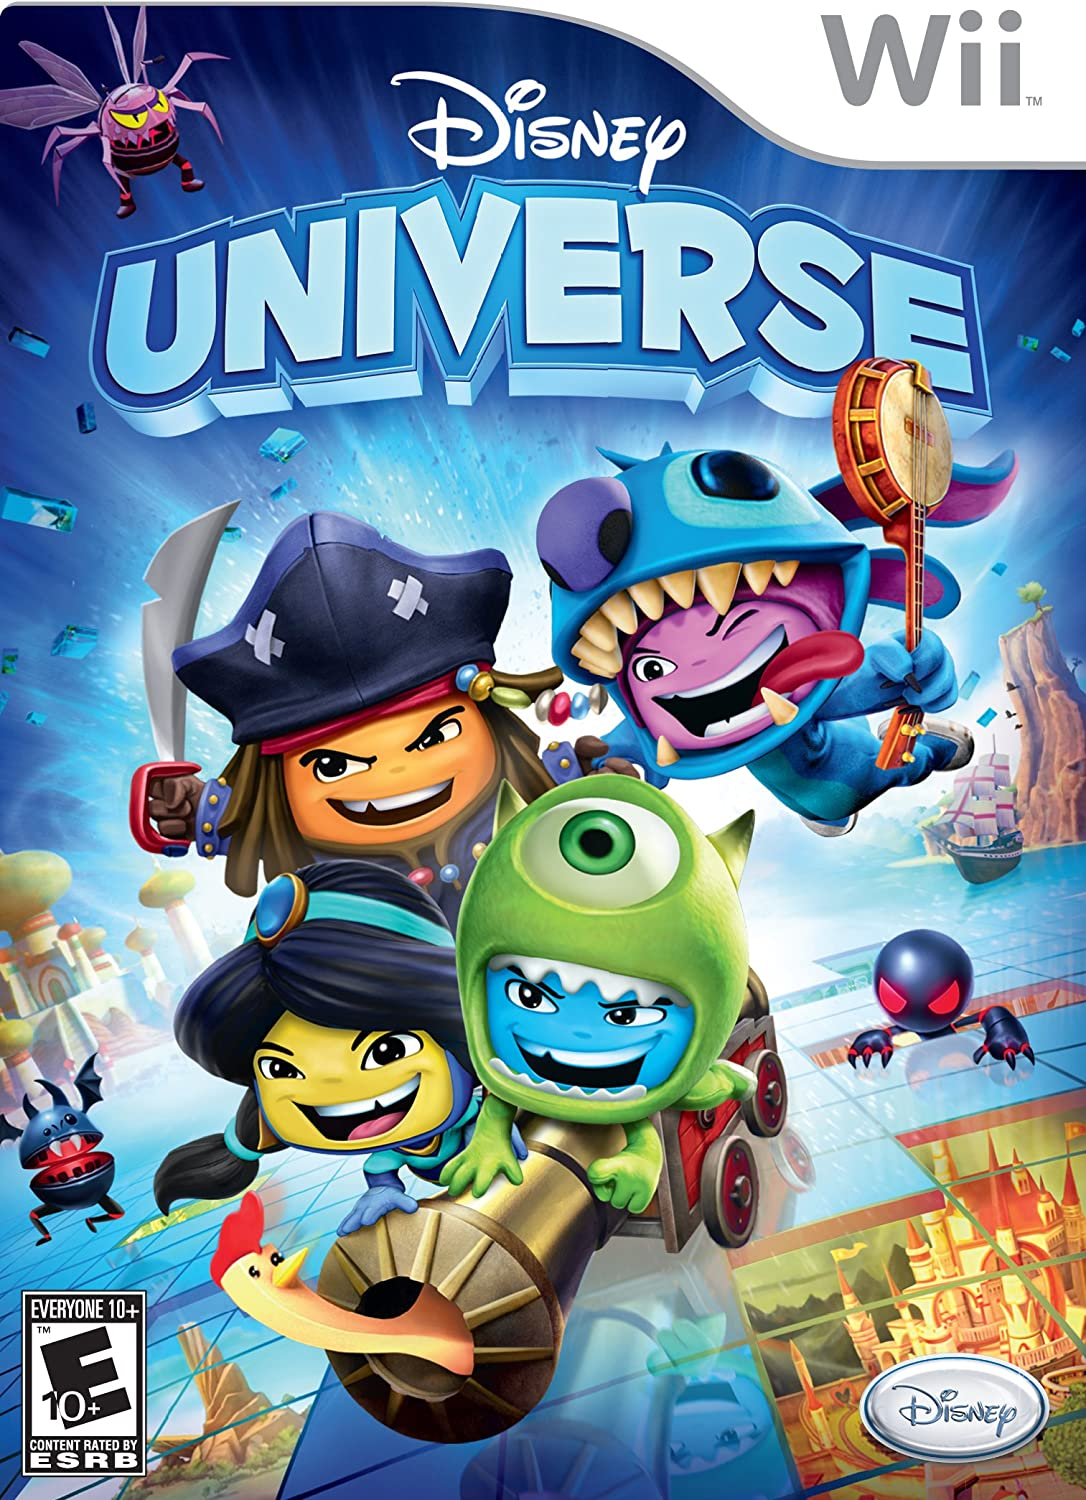 Amazon.com: Disney Universe - Nintendo Wii: Disney Interactive Distri:  Video Games